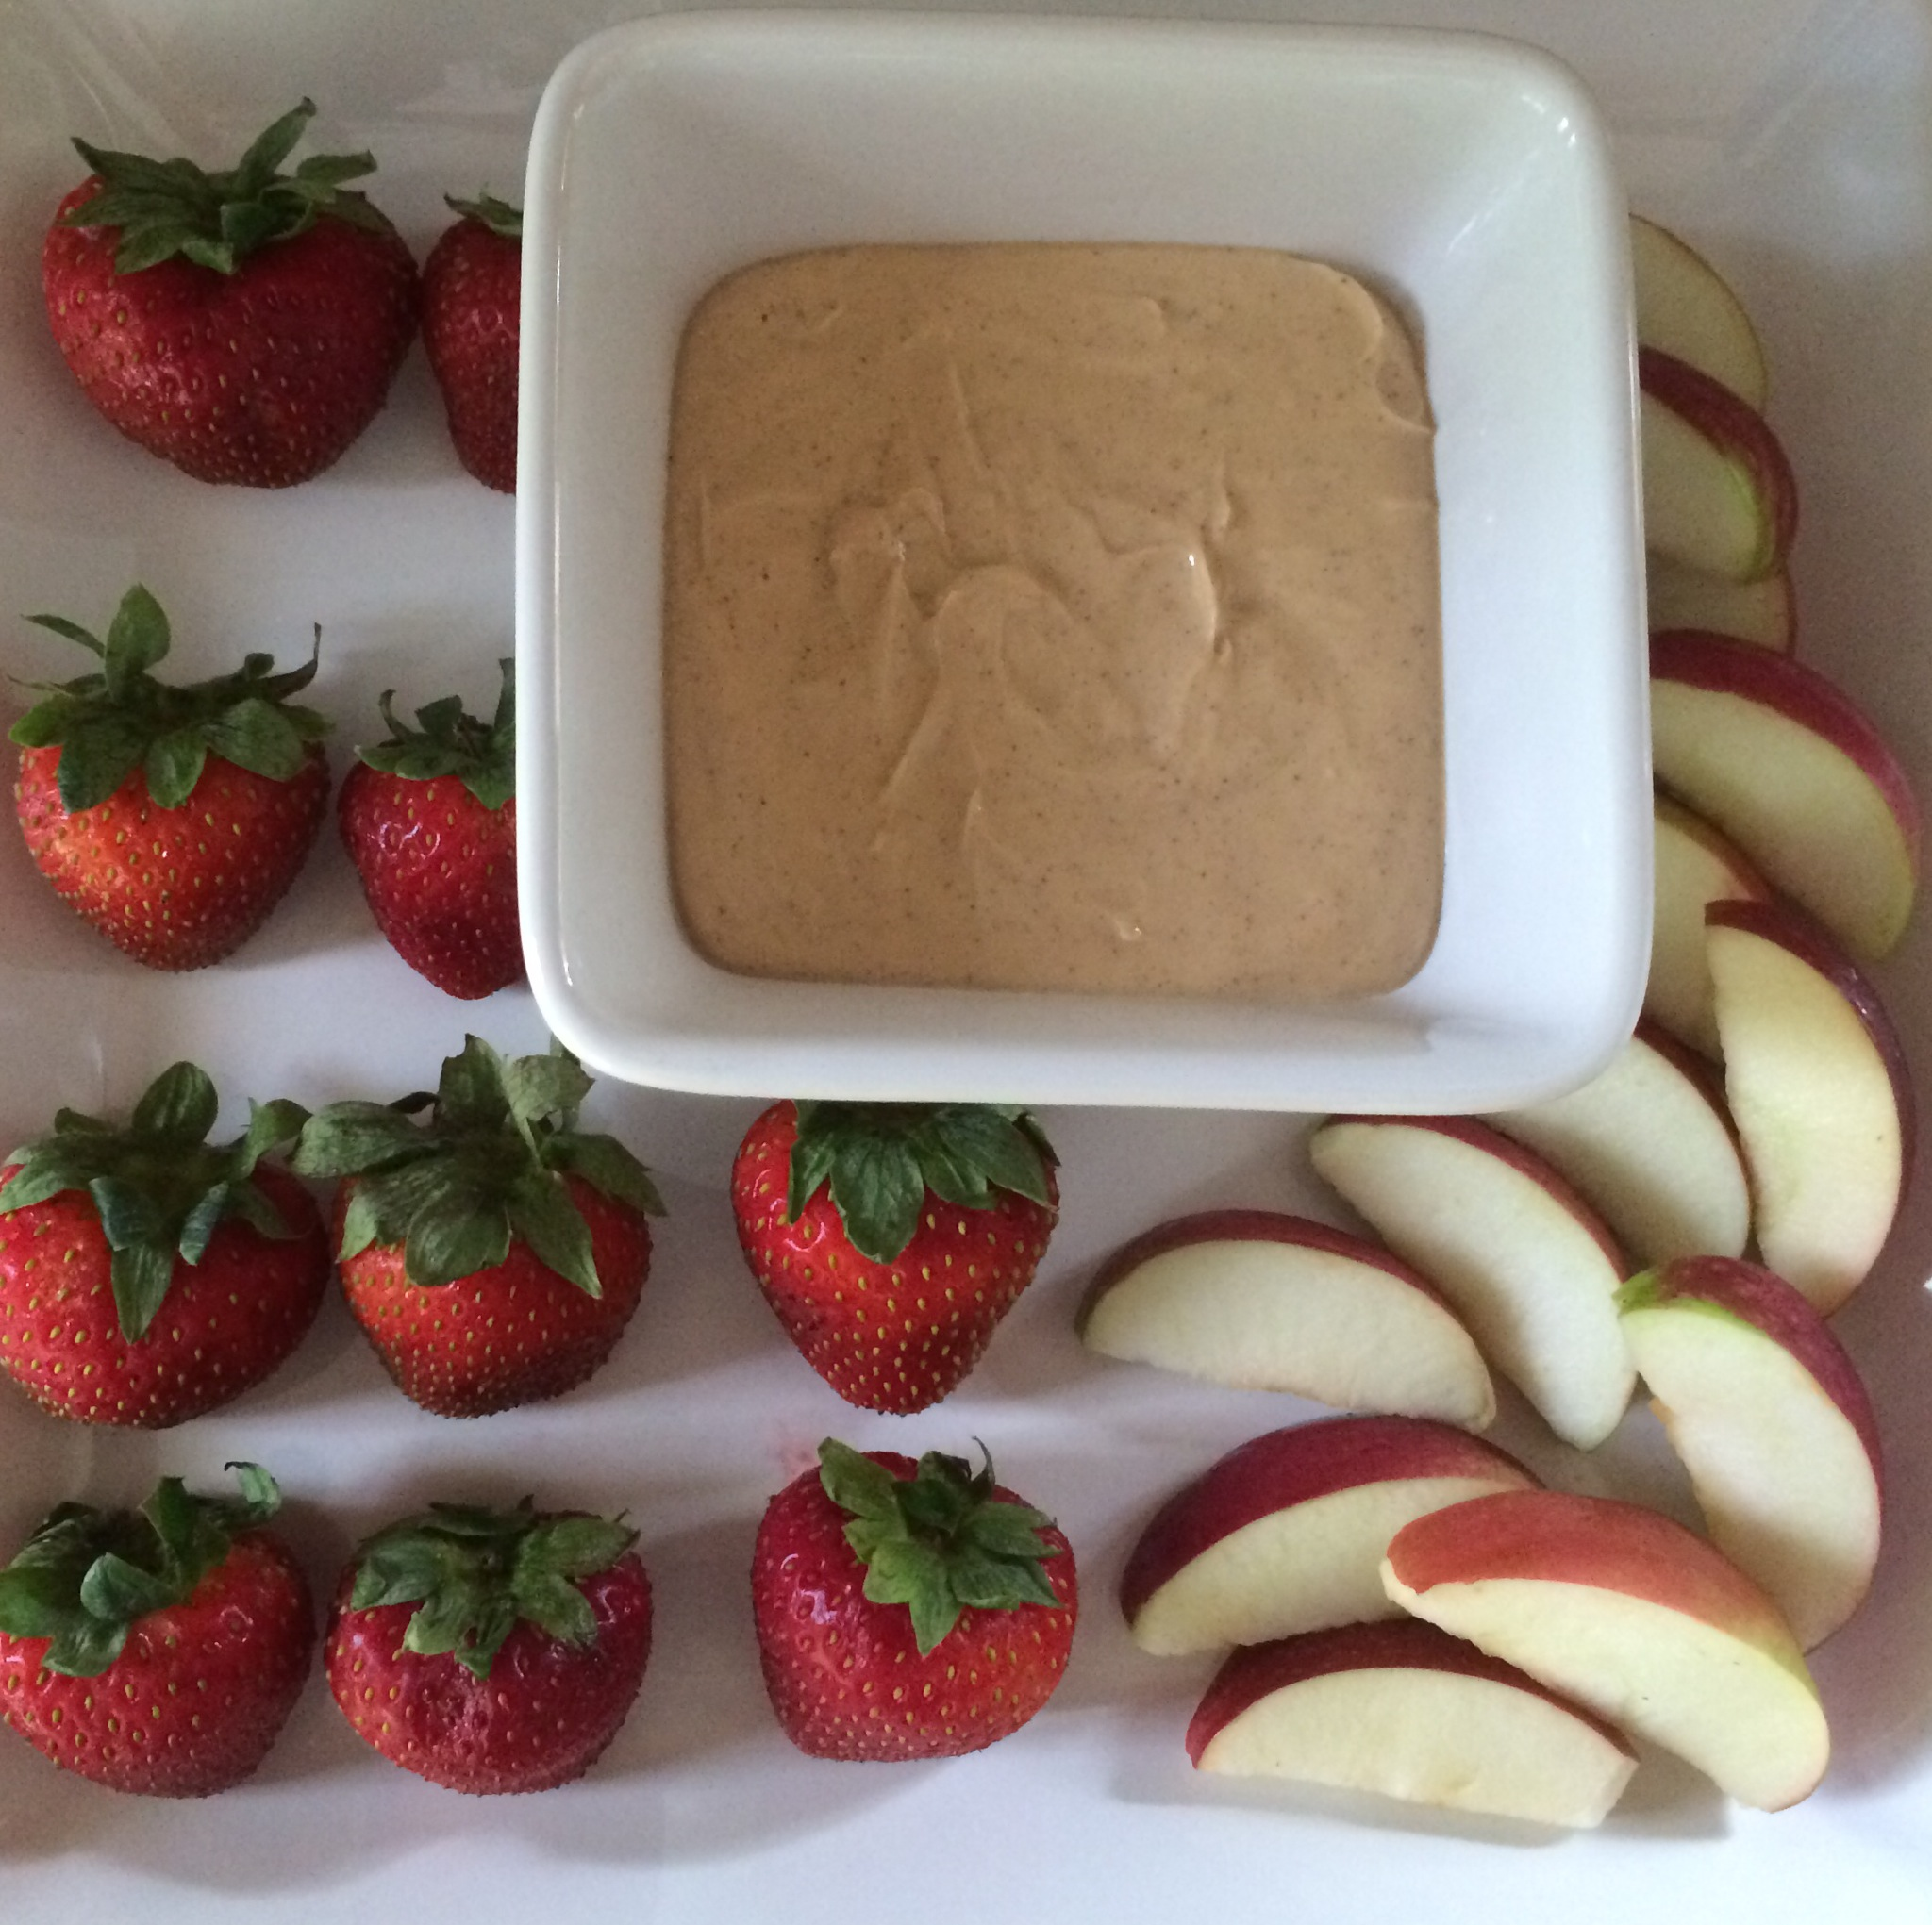 Healthy Protein Packed Snack ~ Peanut Butter & Yogurt Fruit Dip ...